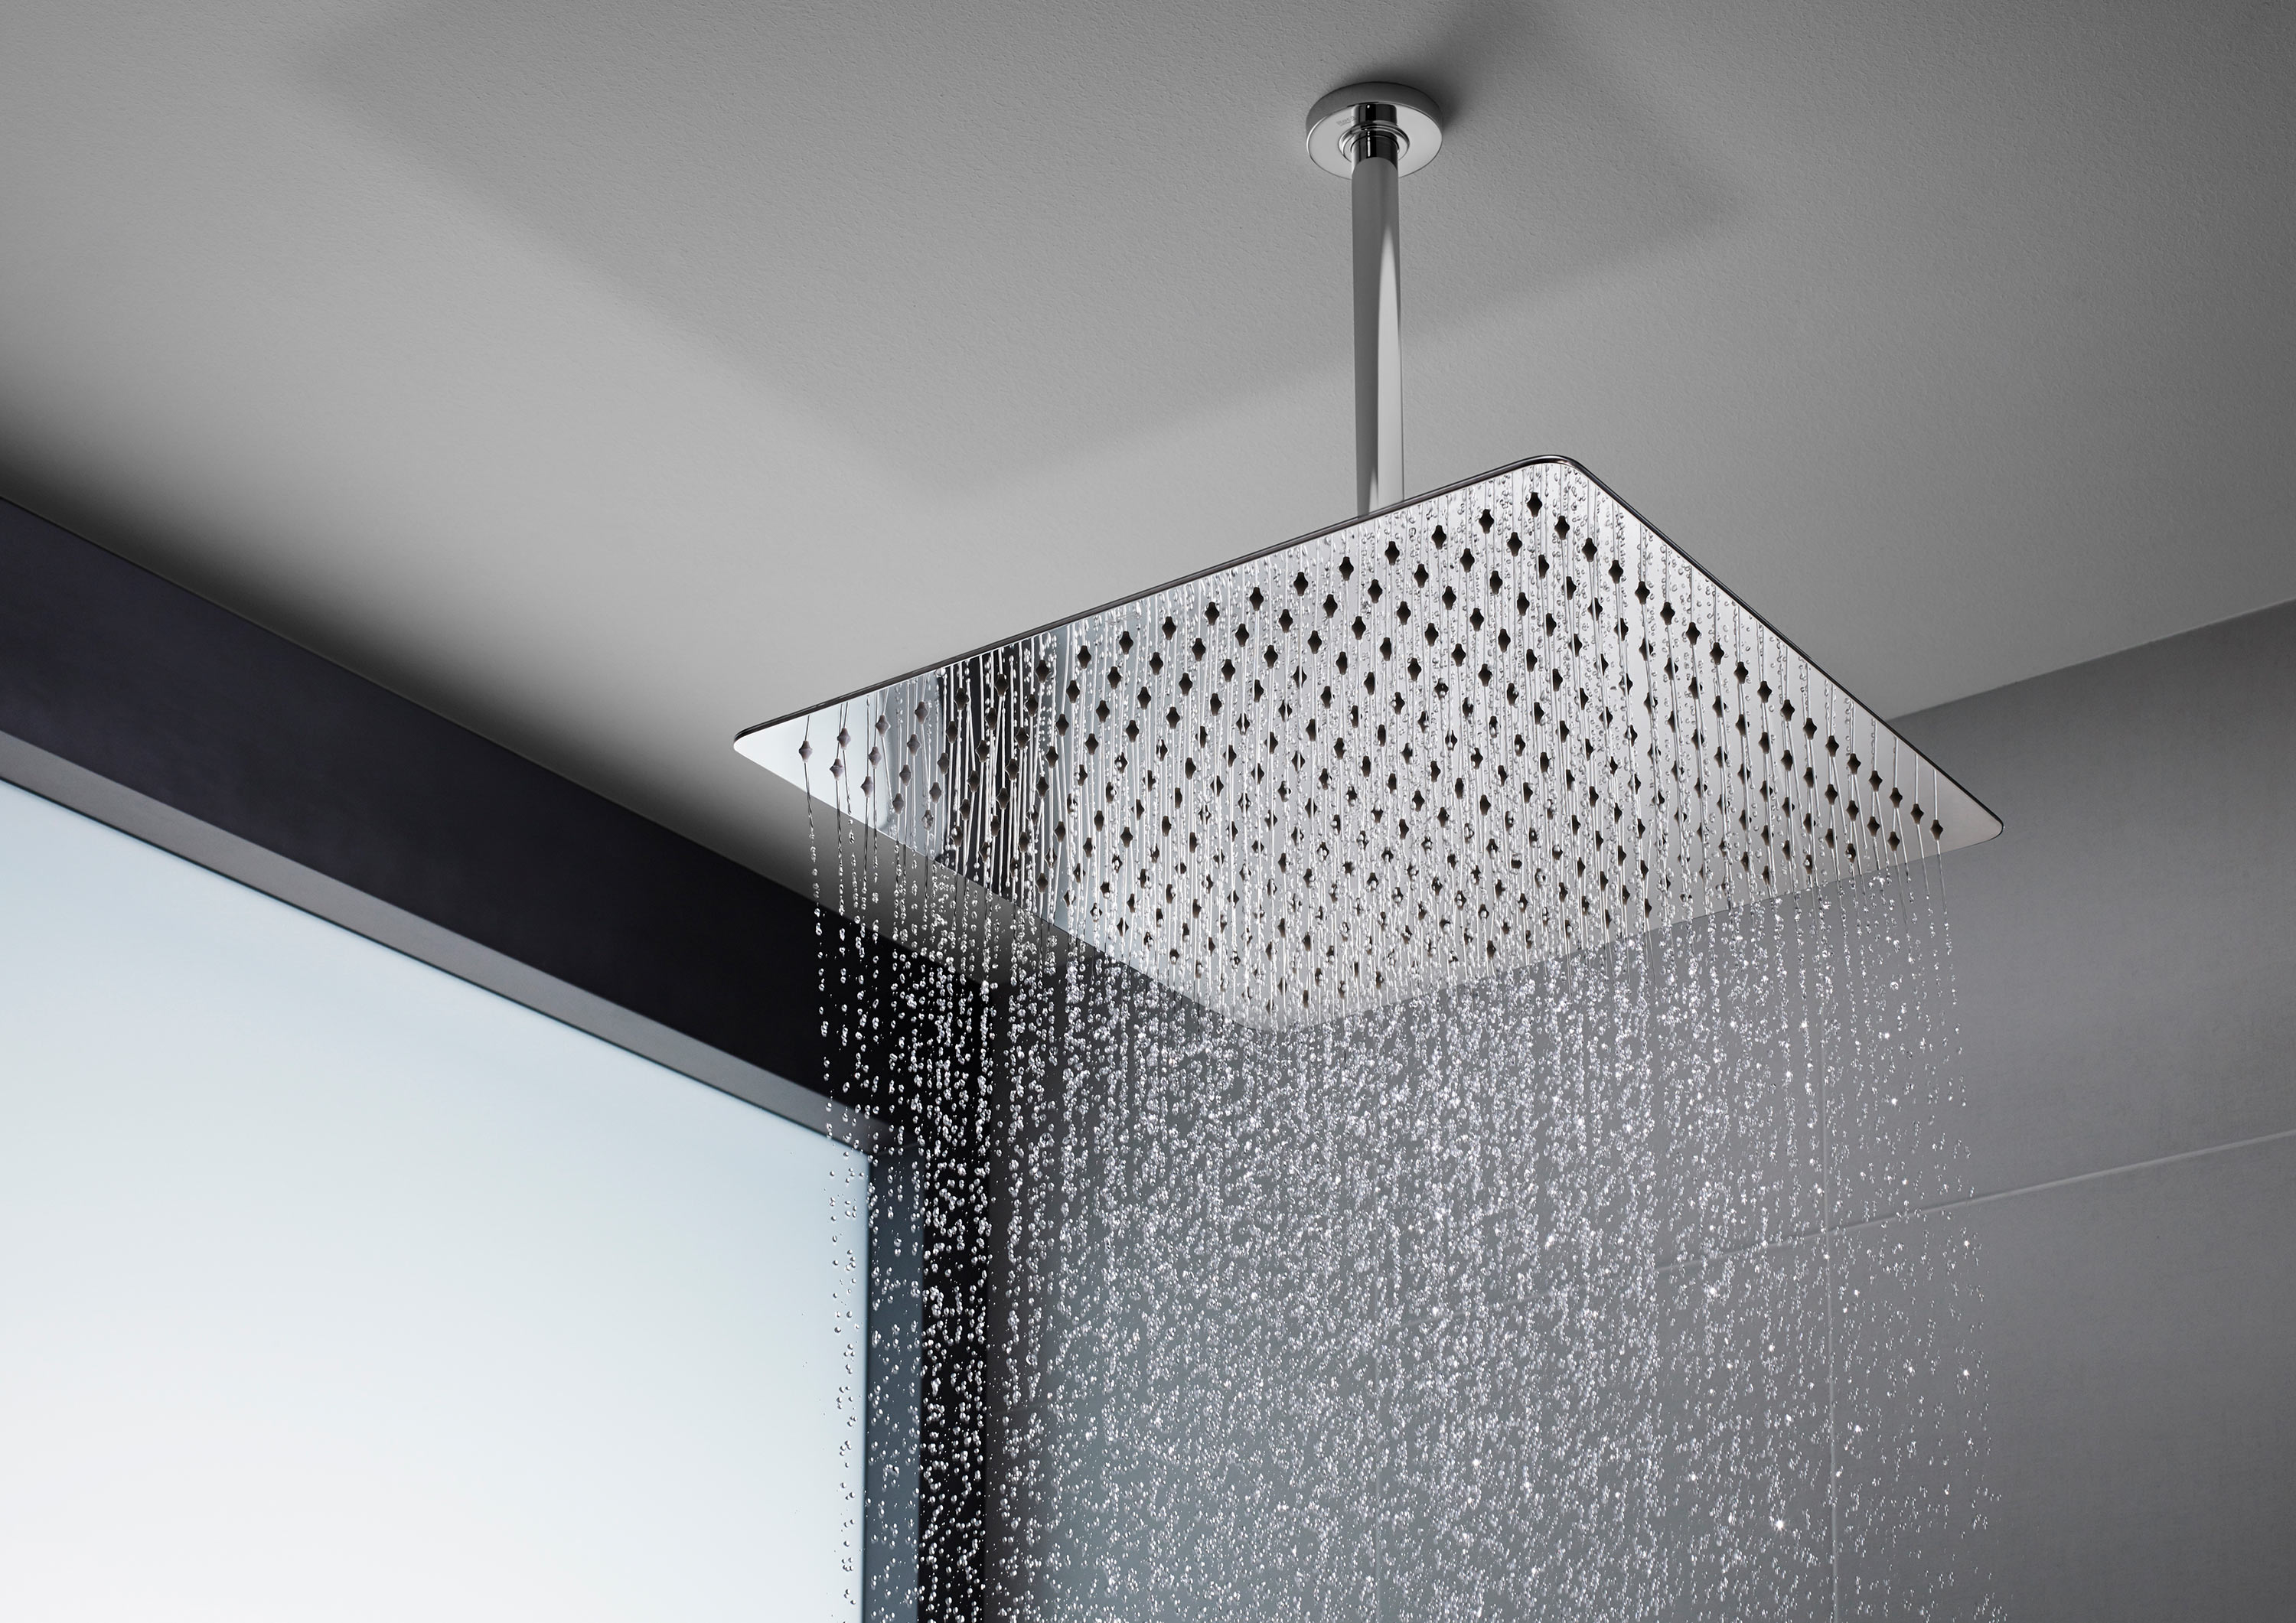 Rain Effect Shower Heads The New Trend For Your Bathroom